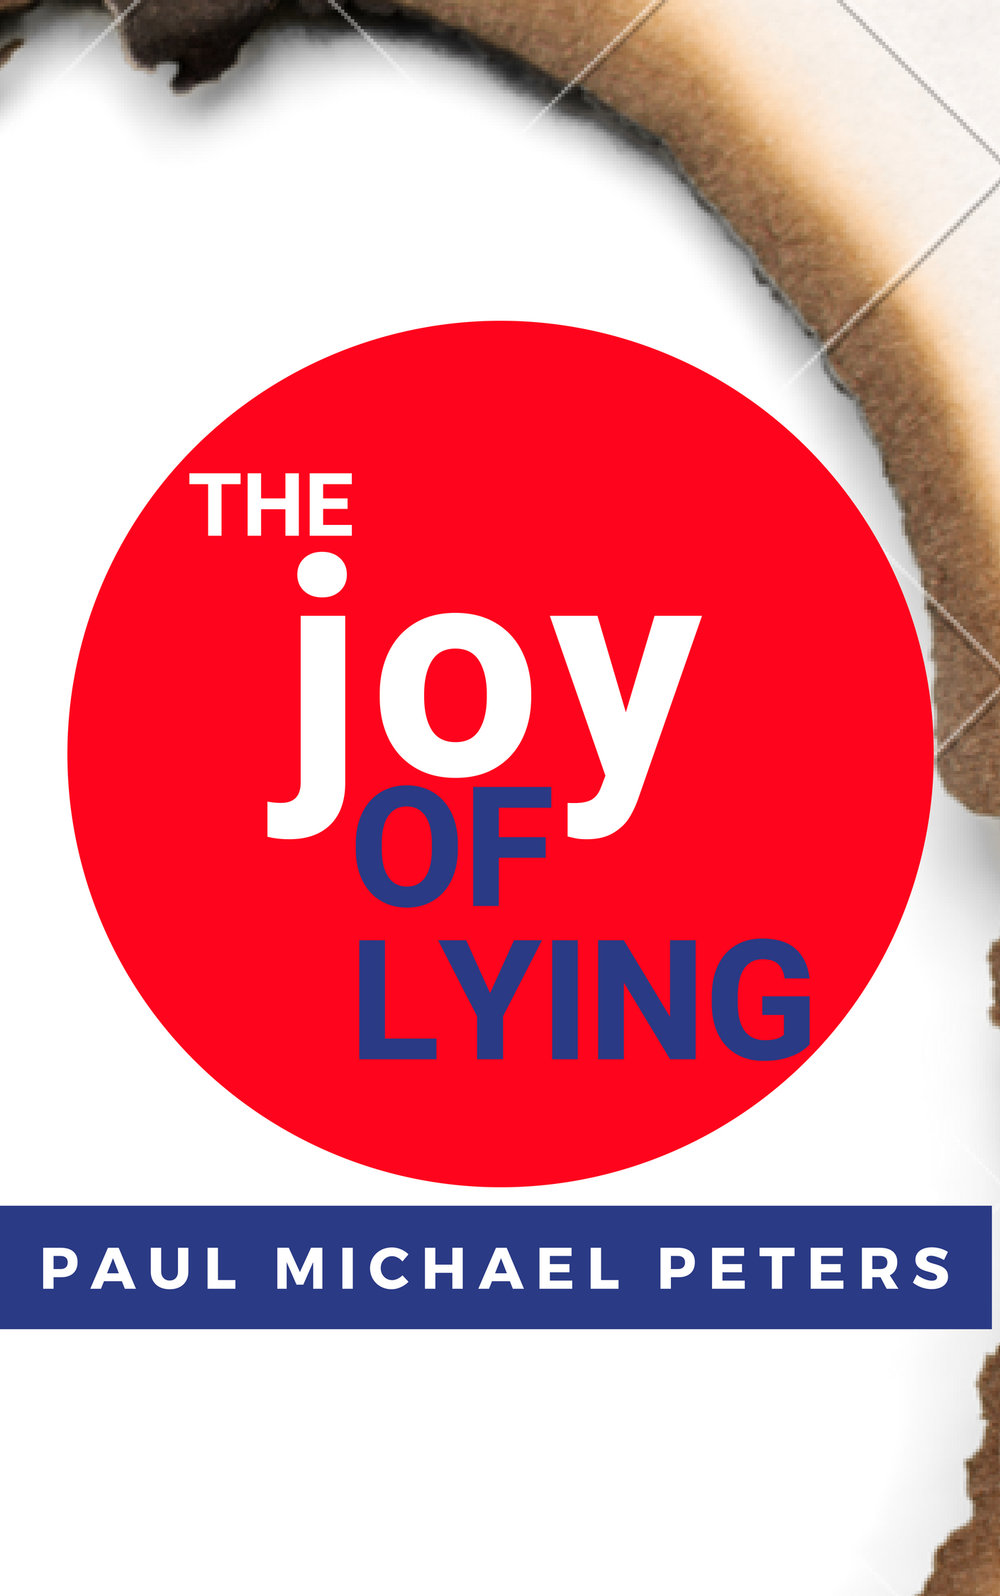 Coming Soon - The Joy of Lying - by Paul Michael PetersDillon Wainwright is a recent graduate of the University of Texas at Austin, living alone, gaming with his old college friends in his off-hours, working as a data cruncher during the day.On the Friday night that the novella begins, he goes out late to get some food and stumbles upon his old girlfriend, Haley Segal, who broke his heart a year before by storming out after a fight and never coming back.He's surprised to see her, surprised he hasn't seen her before, and during the course of a conversation, he discovers that she's homeless and has been living on the streets of Austin for the past year.